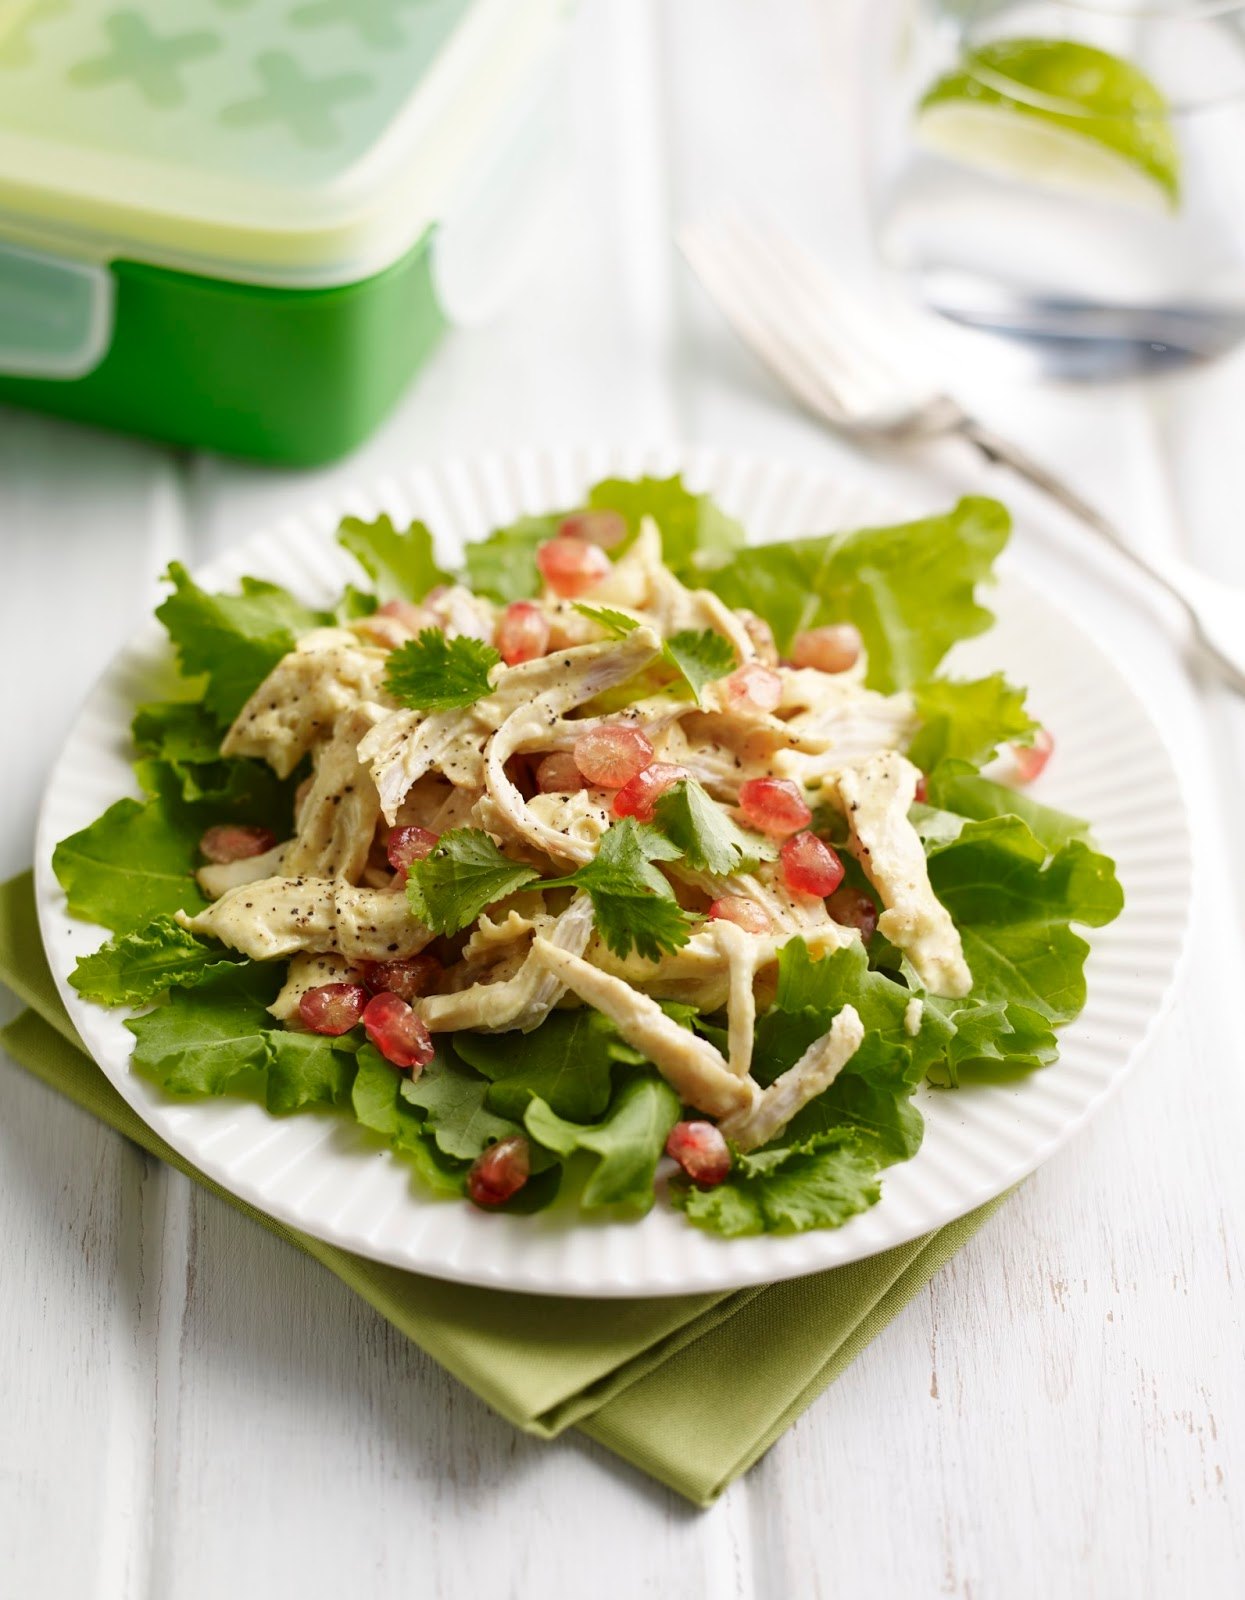 How To Make A Shredded Chicken and Baby Kale Lunch Box